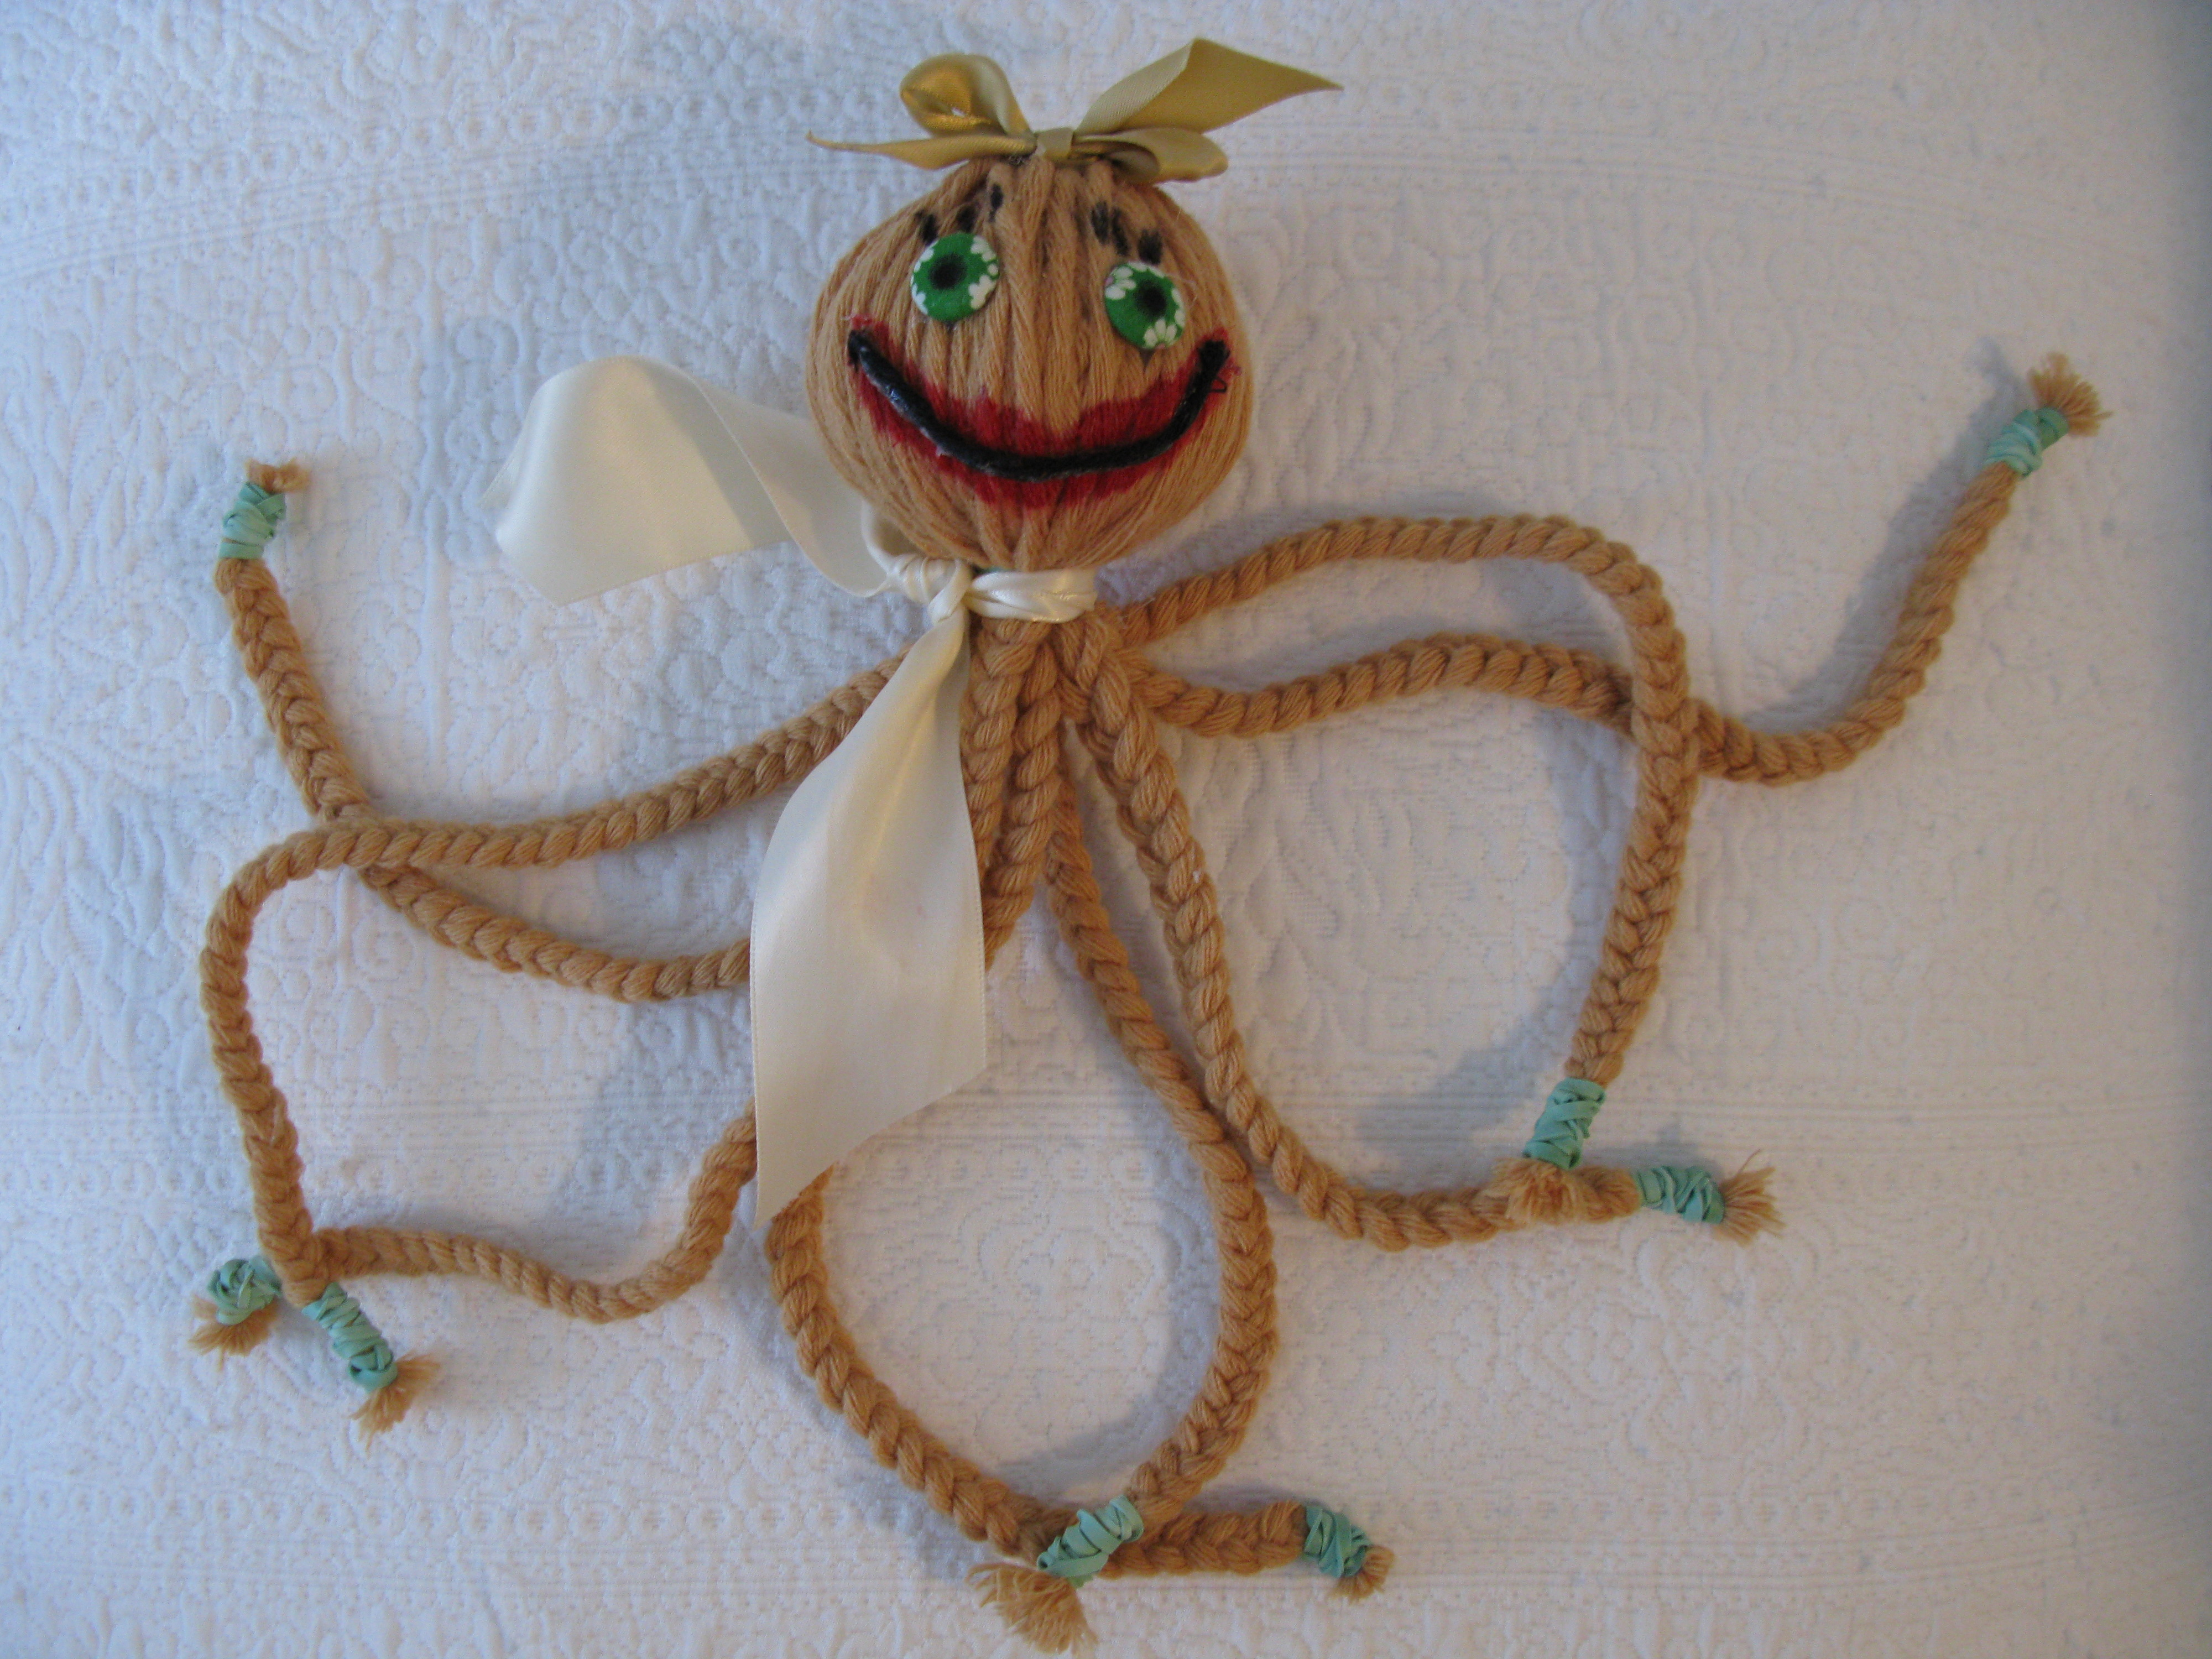 Picture of BRAID THAT OCTOPUS - a Craft Project for Kids Ages 4 -10